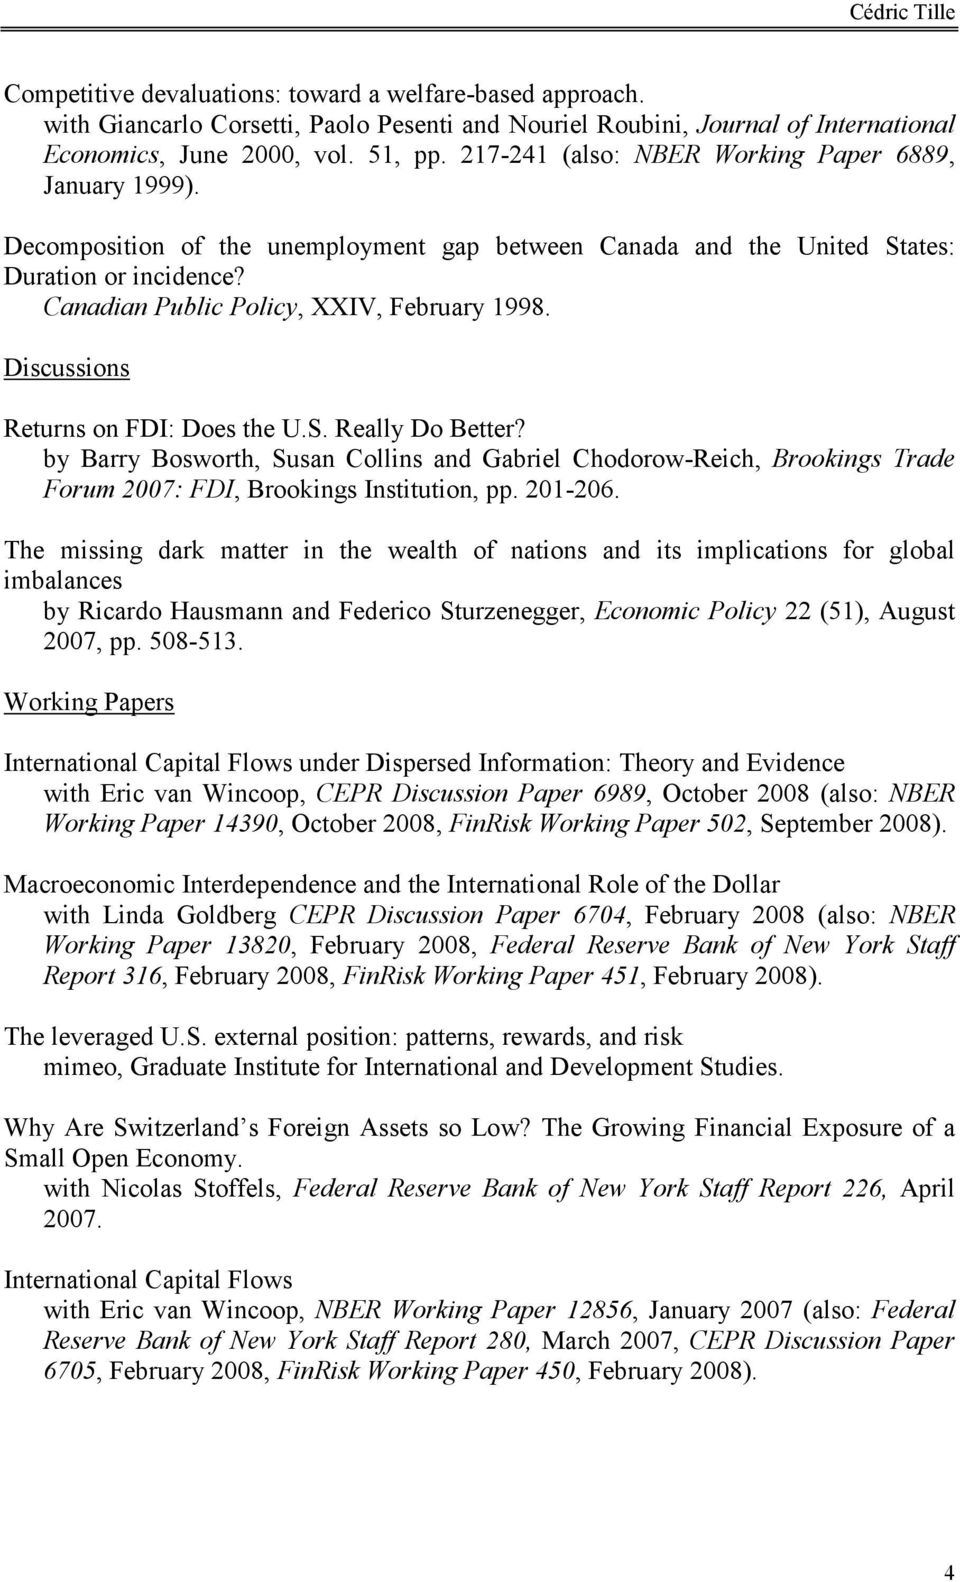 Discussions Returns on FDI: Does the U.S. Really Do Better? by Barry Bosworth, Susan Collins and Gabriel Chodorow-Reich, Brookings Trade Forum 2007: FDI, Brookings Institution, pp. 201-206.